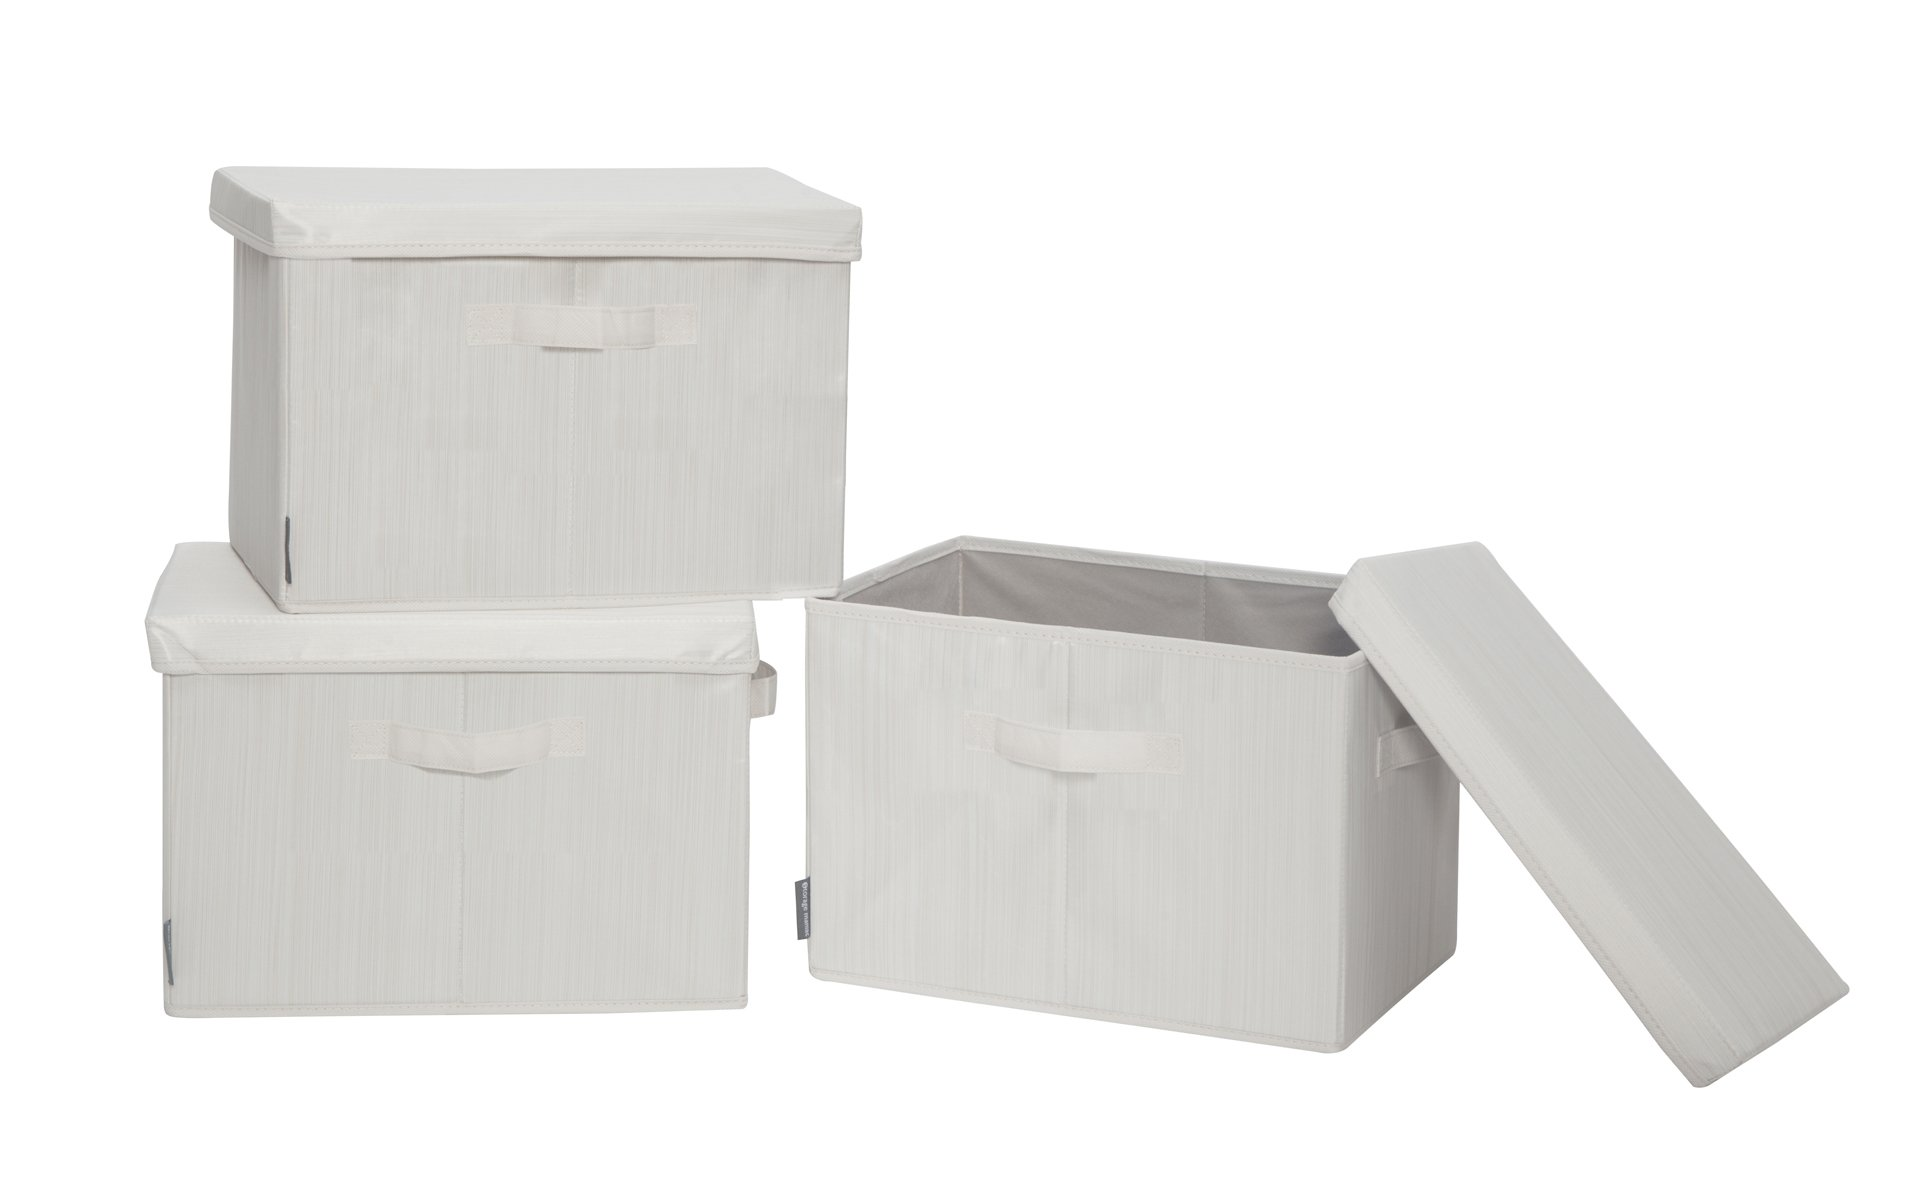 "STORAGE MANIAC Canvas Storage Box with Lid, Folding Basket Organizer Bin, Bamboo Style, 3-Pack, Medium - Removable Lid - The sturdy lid provides a dust proof solution. These storage boxes are stackable with lid, or you can remove it for taller things, getting different kinds of containers to store items Dimension - Medium Size 10.24"" x 14.96"" x 10.24"", suitable for storing books, arts and crafts, office supplies, towels, seasonal items, toy baskets for kids, cosmetics cases on dressers, etc. Reinforced Handles - Features 2 reinforced handles on the front and one side, easy to move and lift the cute fantastic storage box - living-room-decor, living-room, baskets-storage - 61vG5ErwqdL -"